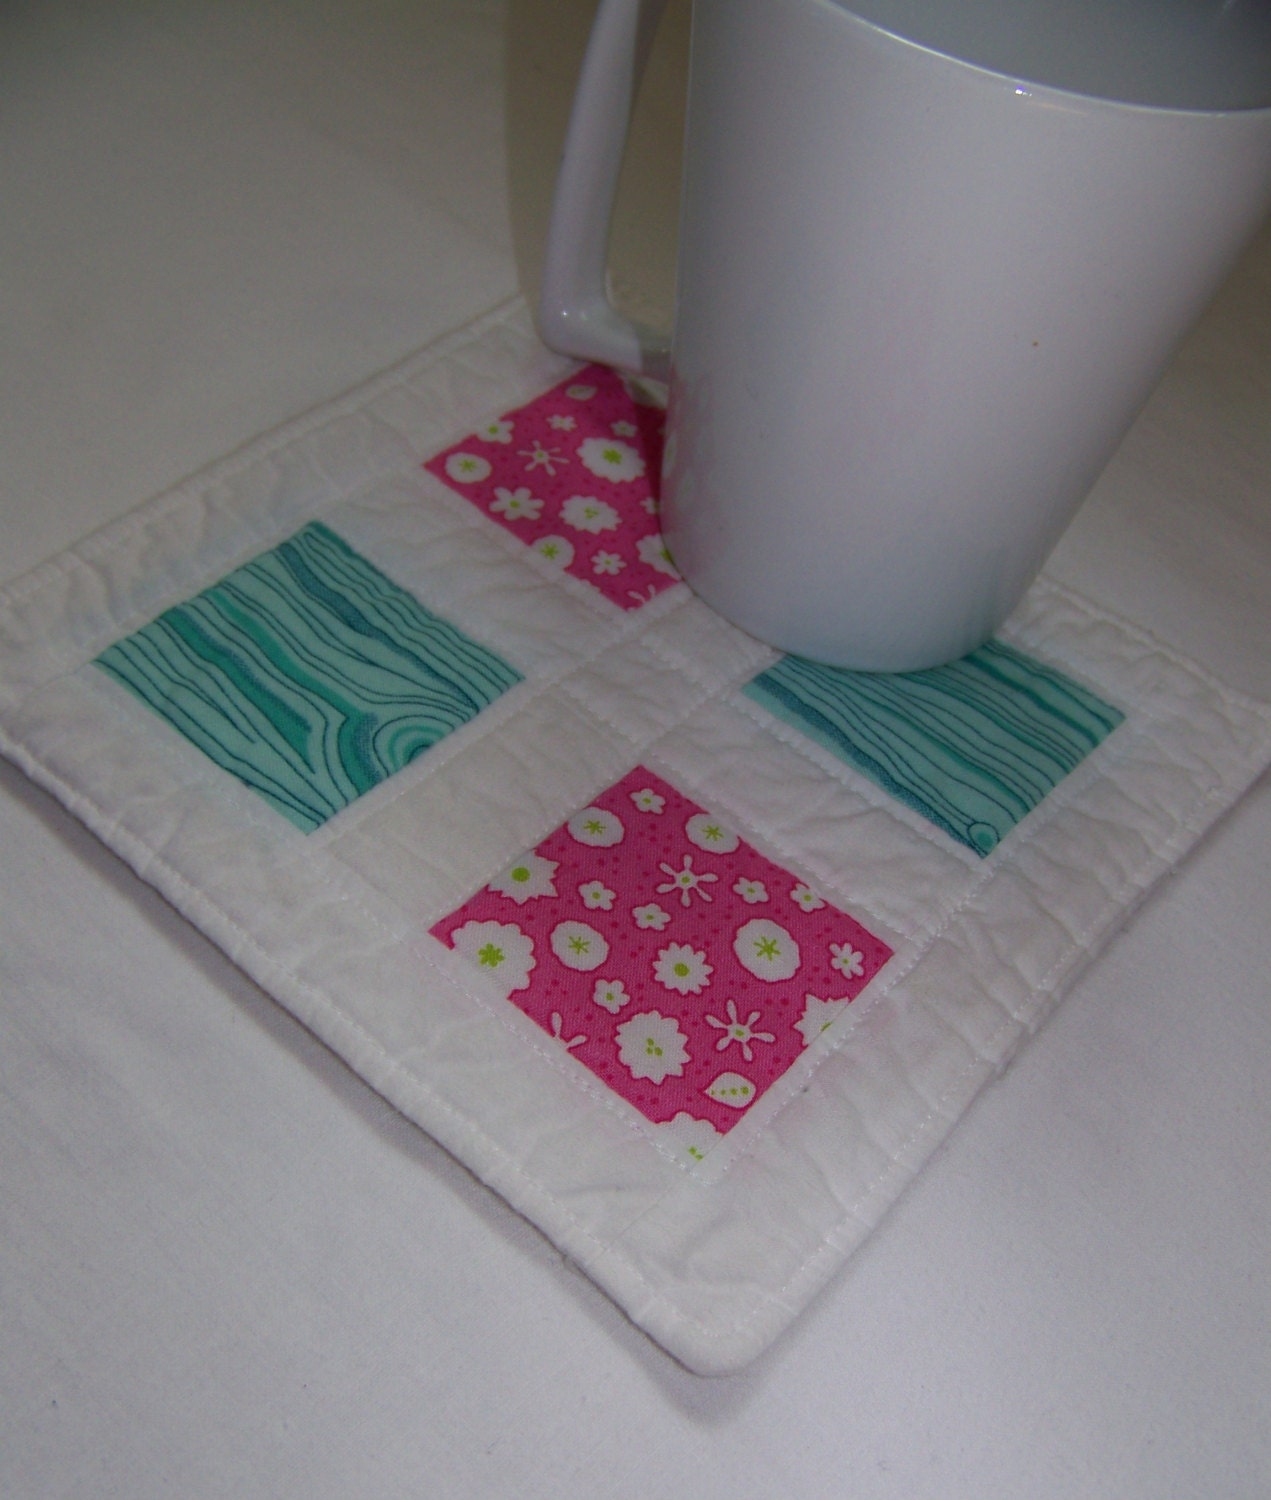 Scrappy Modern Mug Rug Or Coaster In Pink And Minty Green